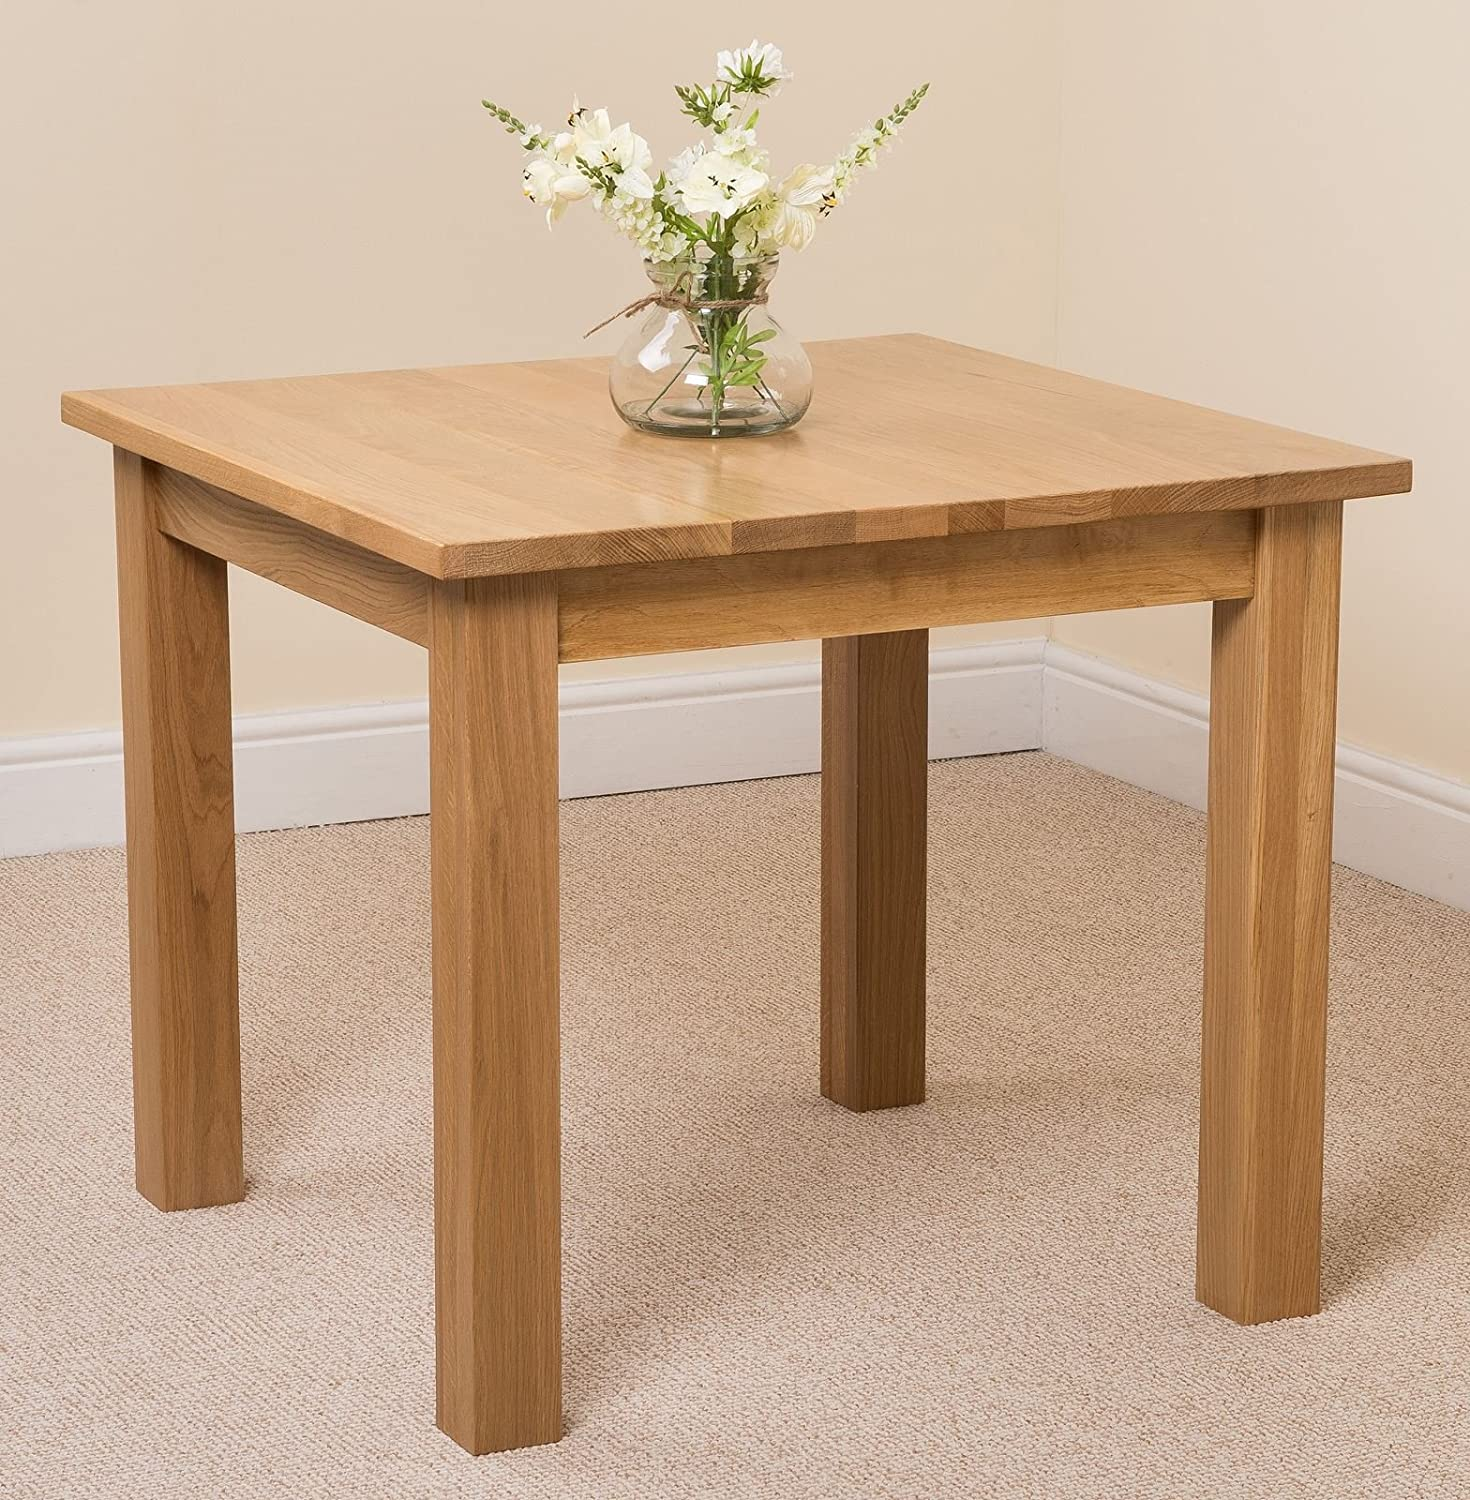 Oslo Solid Oak Square (90cm x 90cm) Dining Room Table: Amazon.co ...